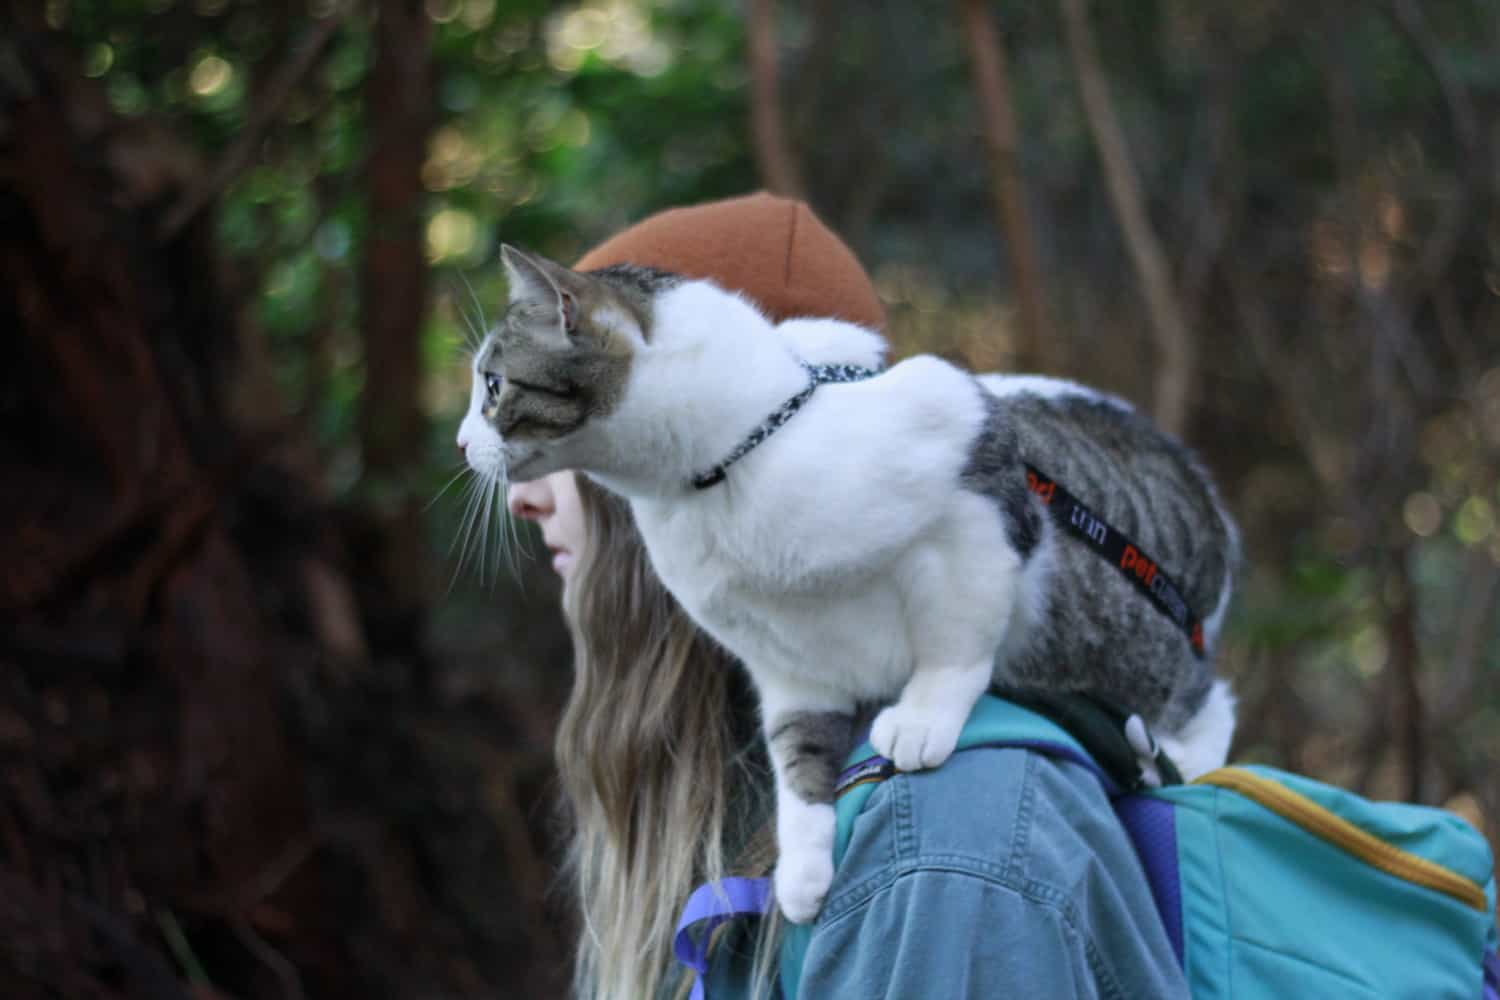 Chips the cat perched on a woman's shoulder wearing an H-style cat harness